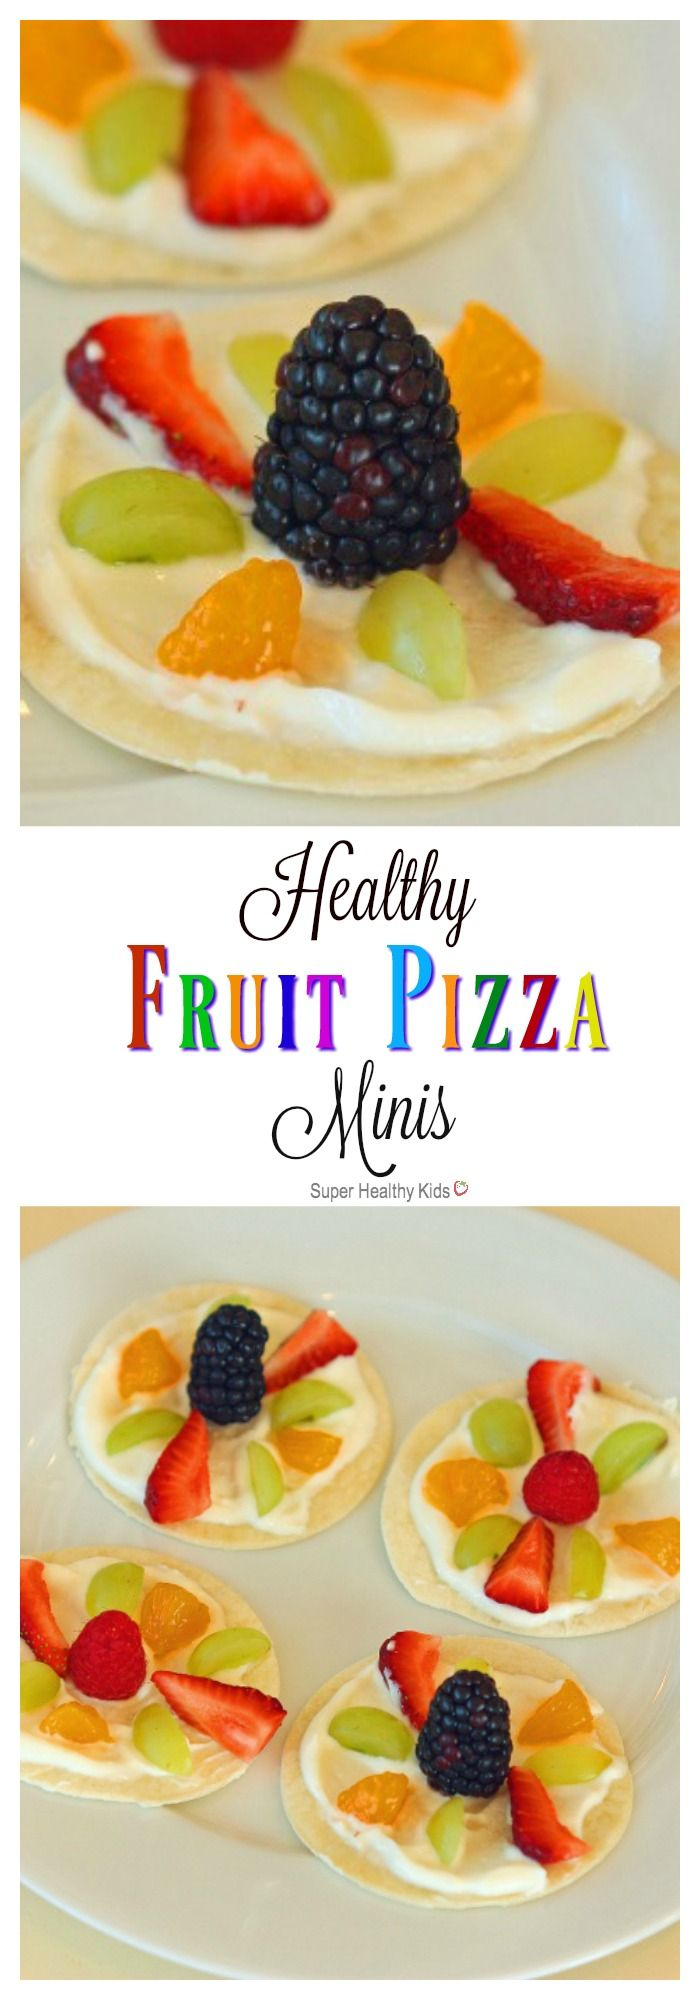 Healthy Fruit Pizza Minis. A quick, no-bake snack that will not disappoint! http://www.superhealthykids.com/healthy-fruit-pizza-minis/